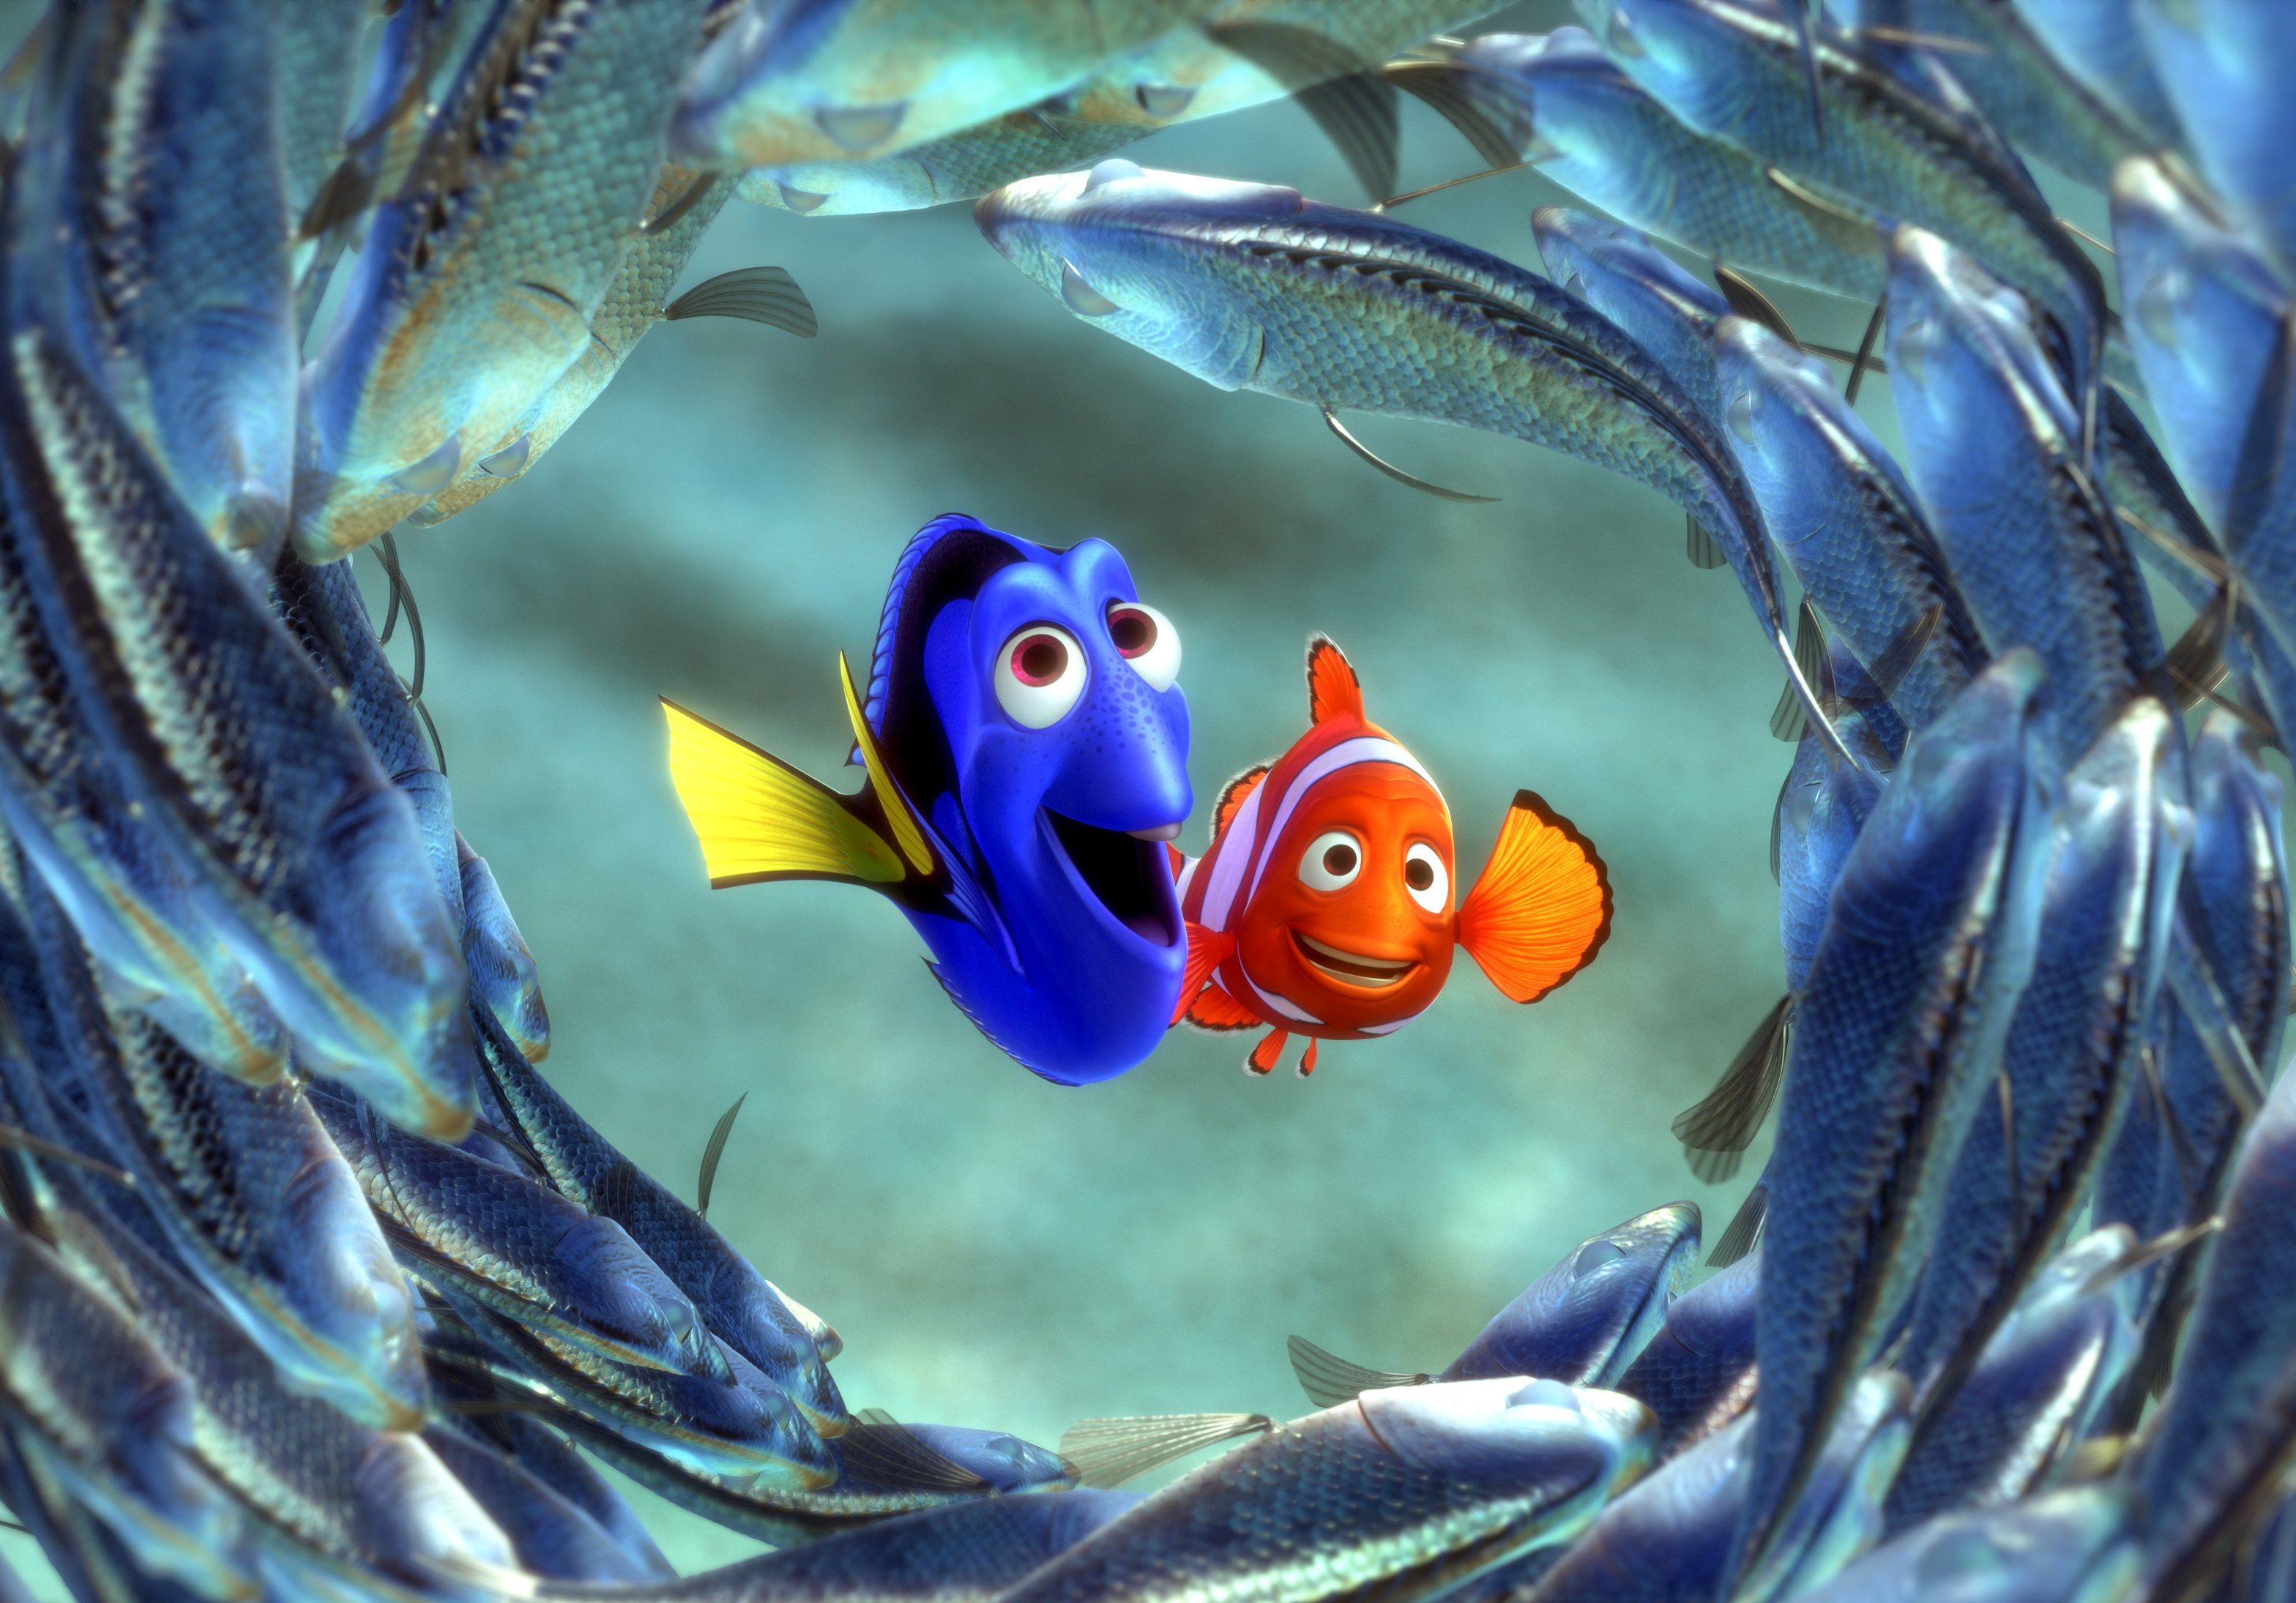 Marlin and Dory, Finding Nemo